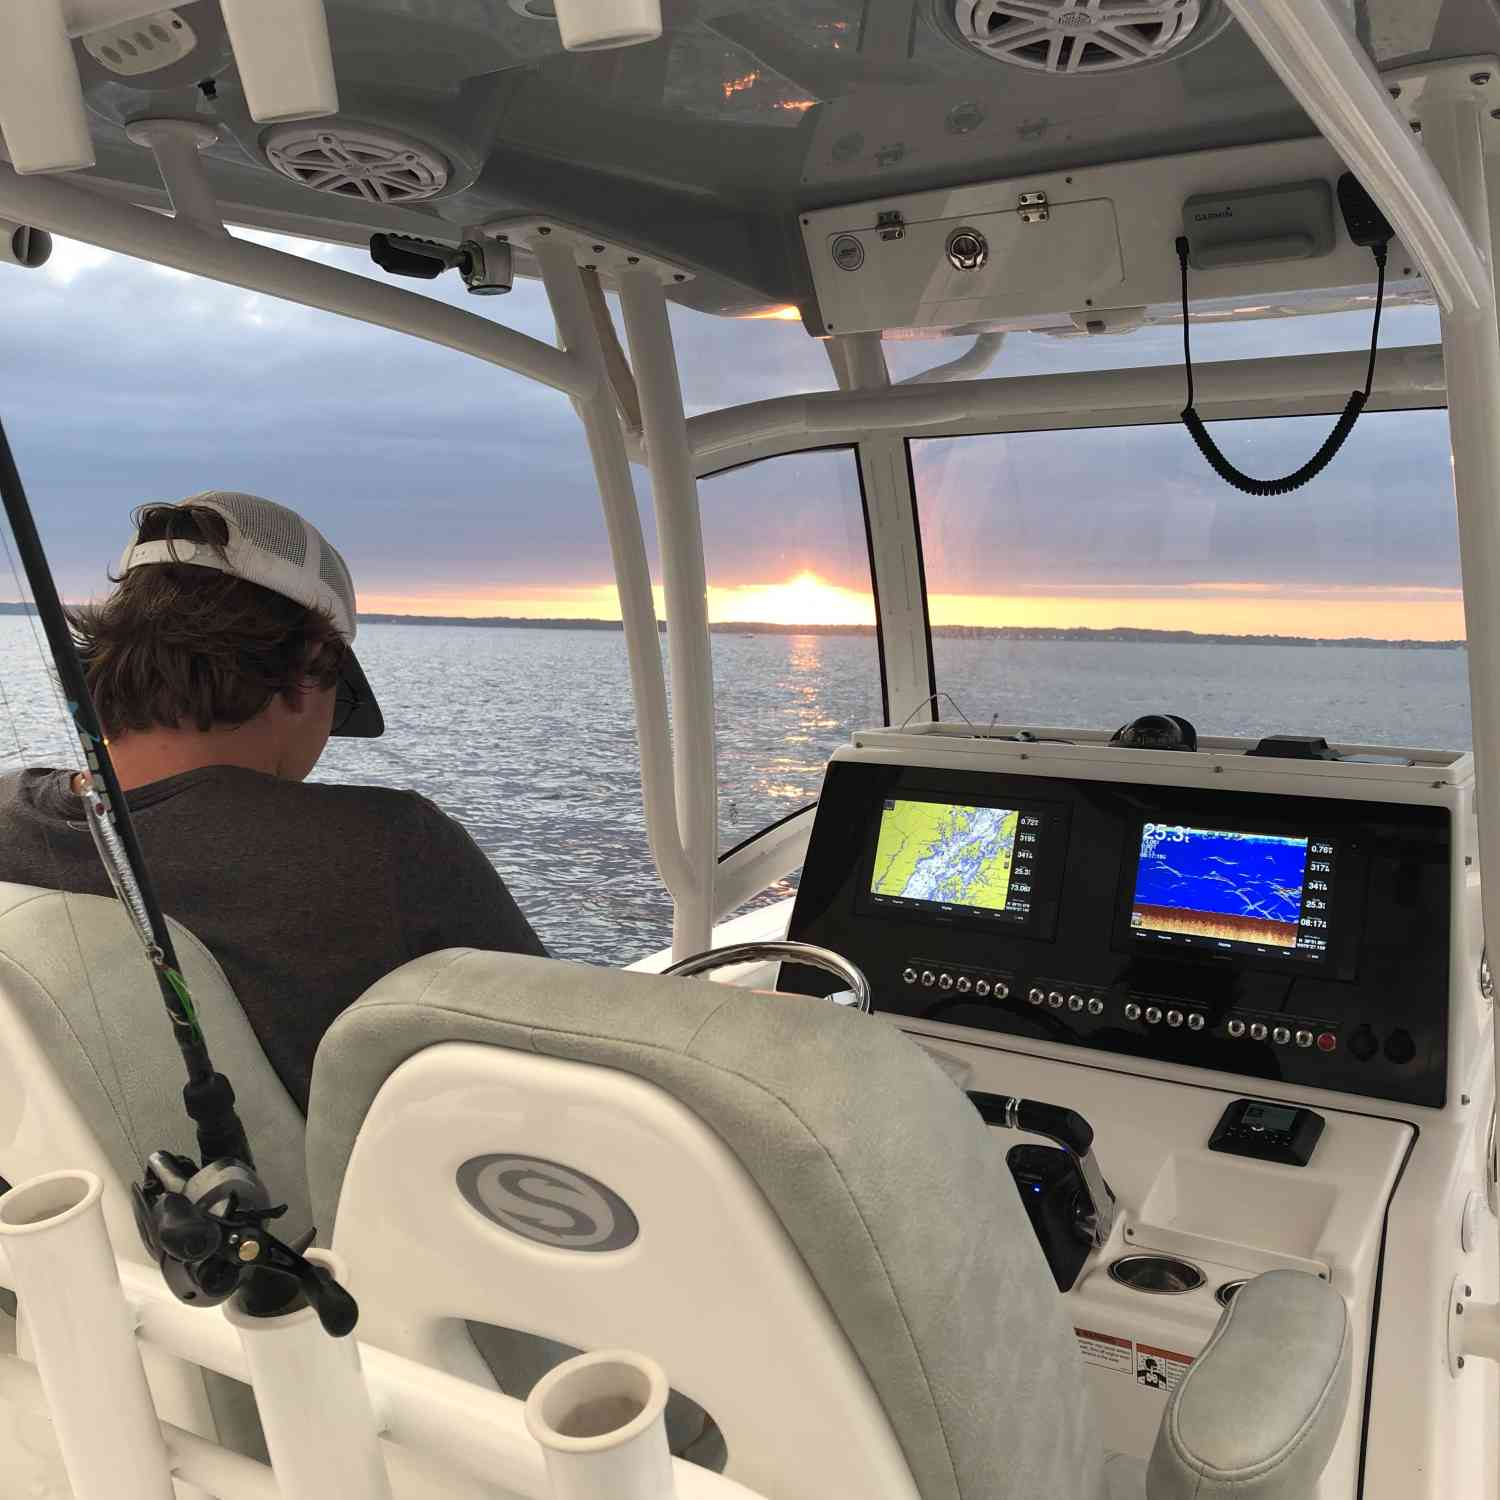 Title: 🌅 - On board their Sportsman Open 282 Center Console - Location: Chesapeake Bay. Participating in the Photo Contest #SportsmanJuly2020